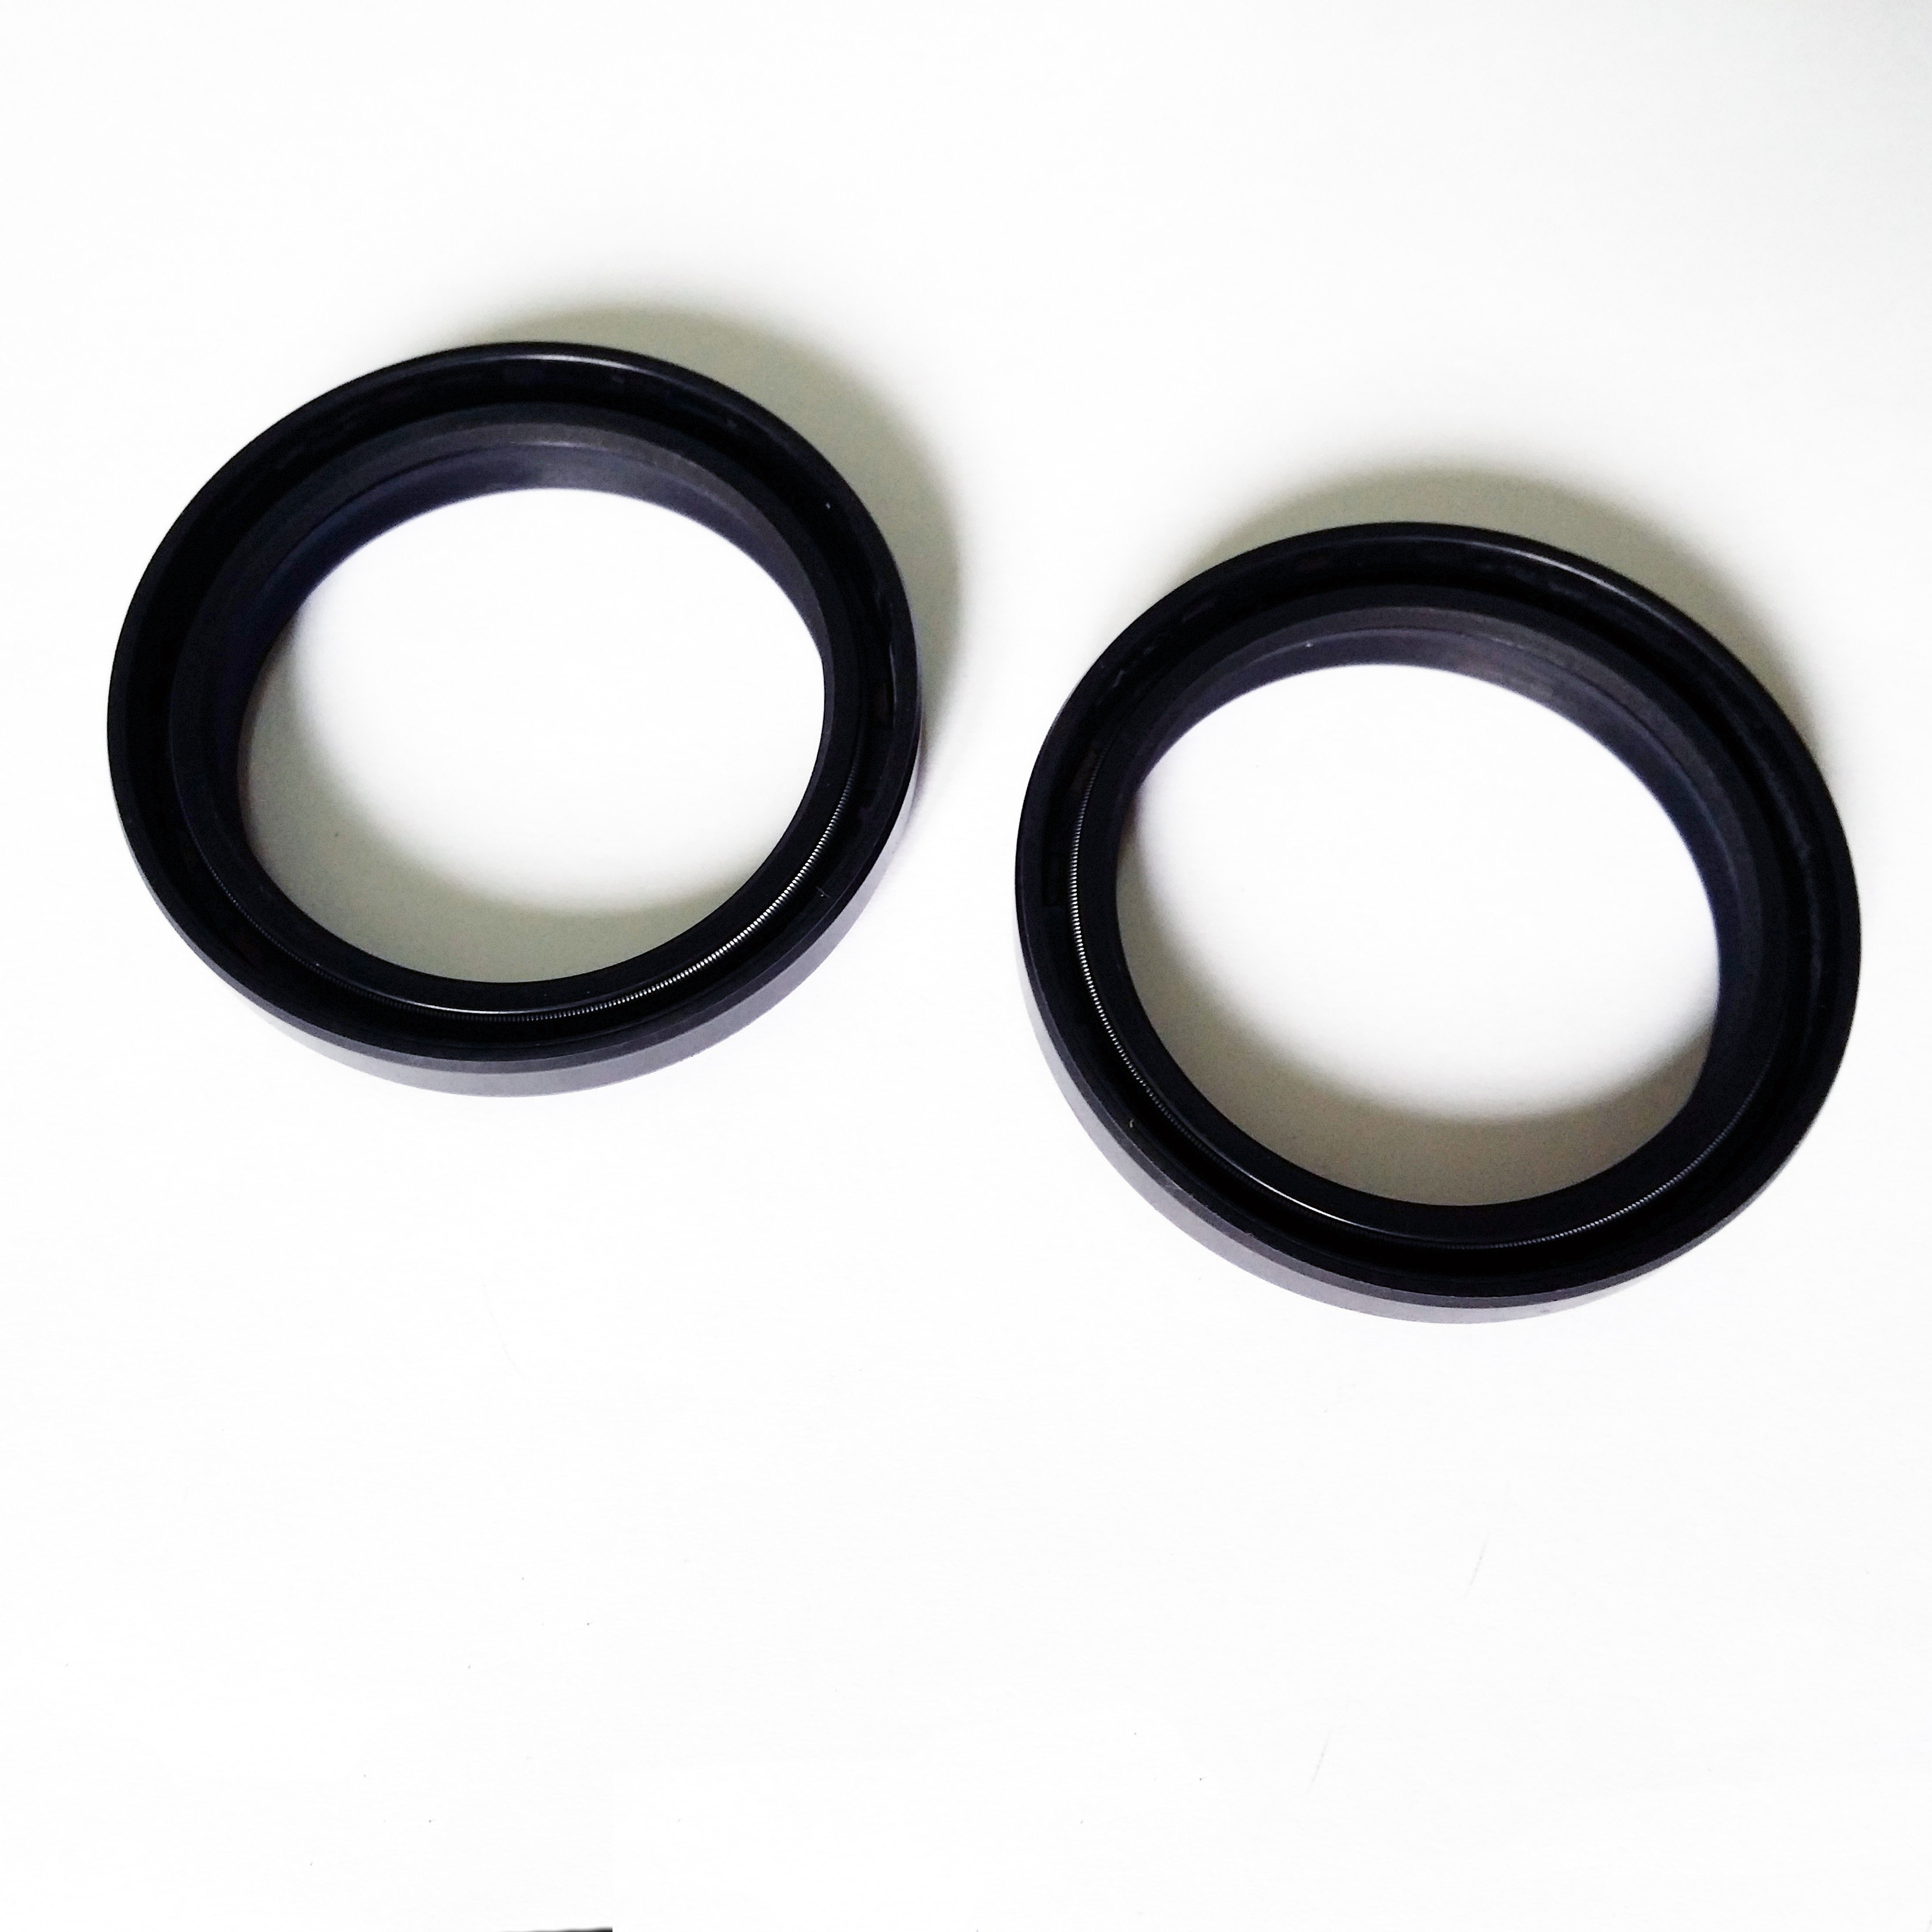 K-Tech Kawasaki KR1 1989-1990 NOK Front Fork Oil Seals 41x53x8/9.5mm